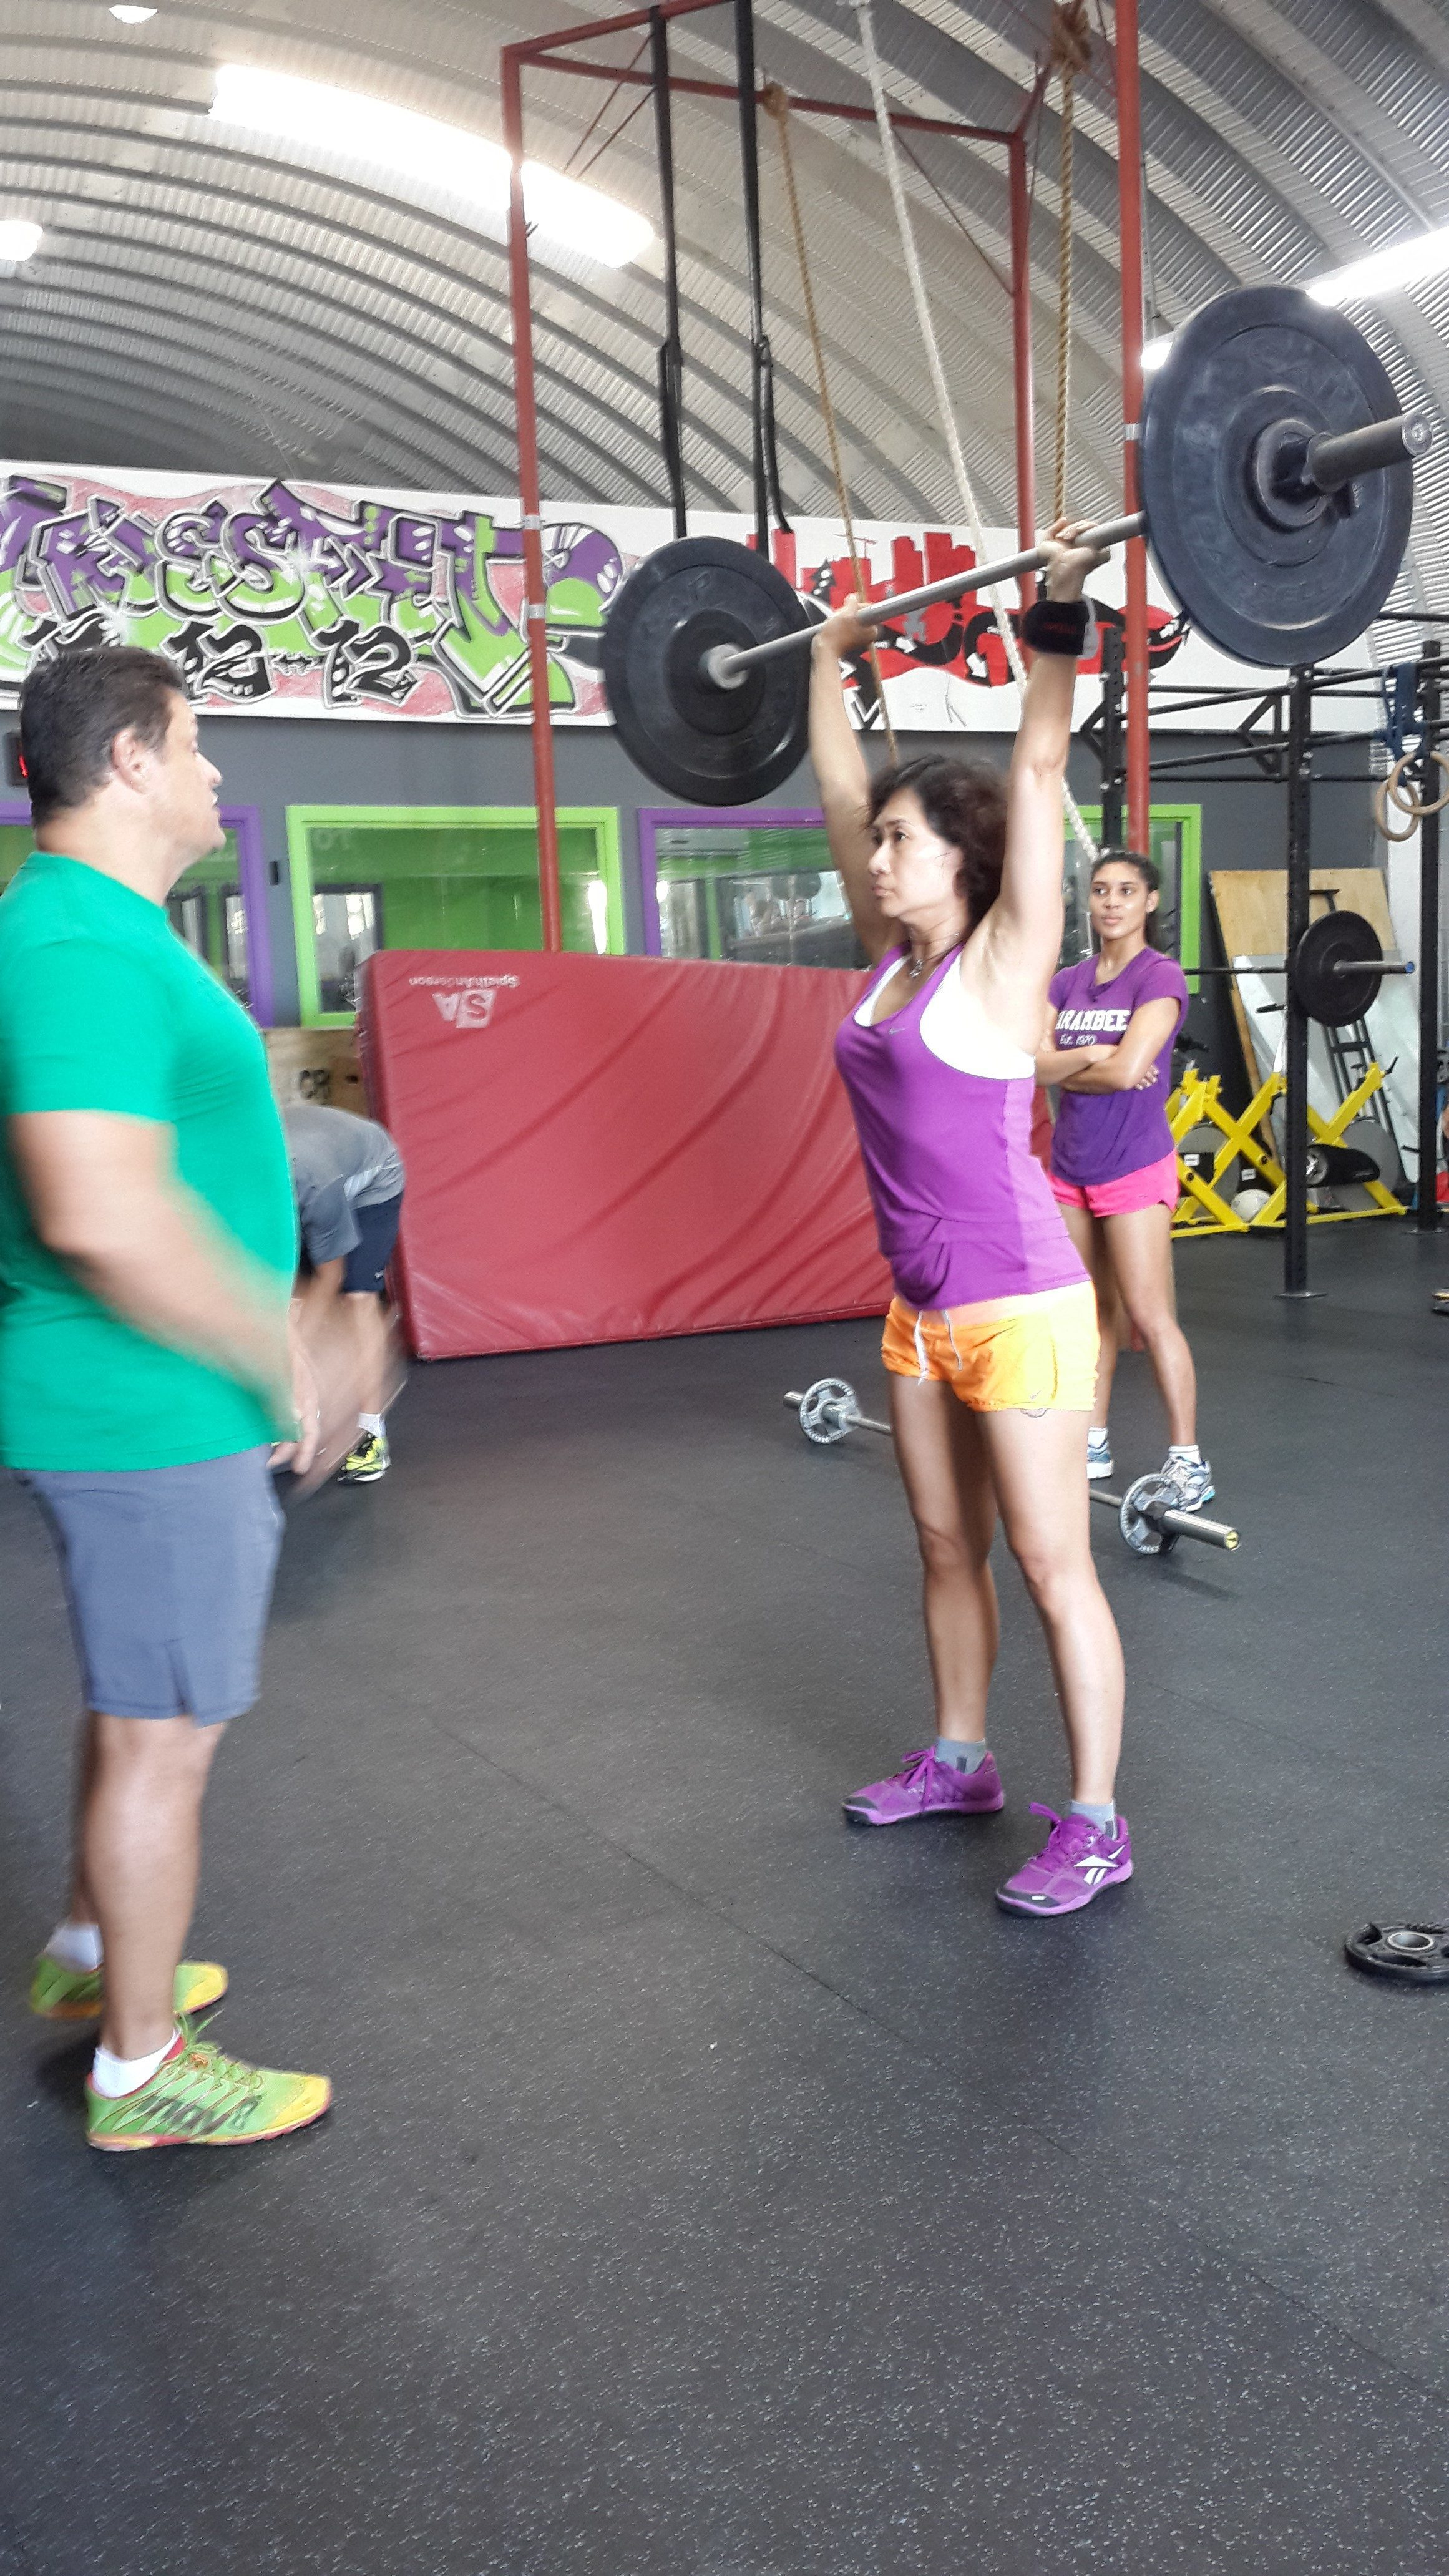 Tham Press after the thruster